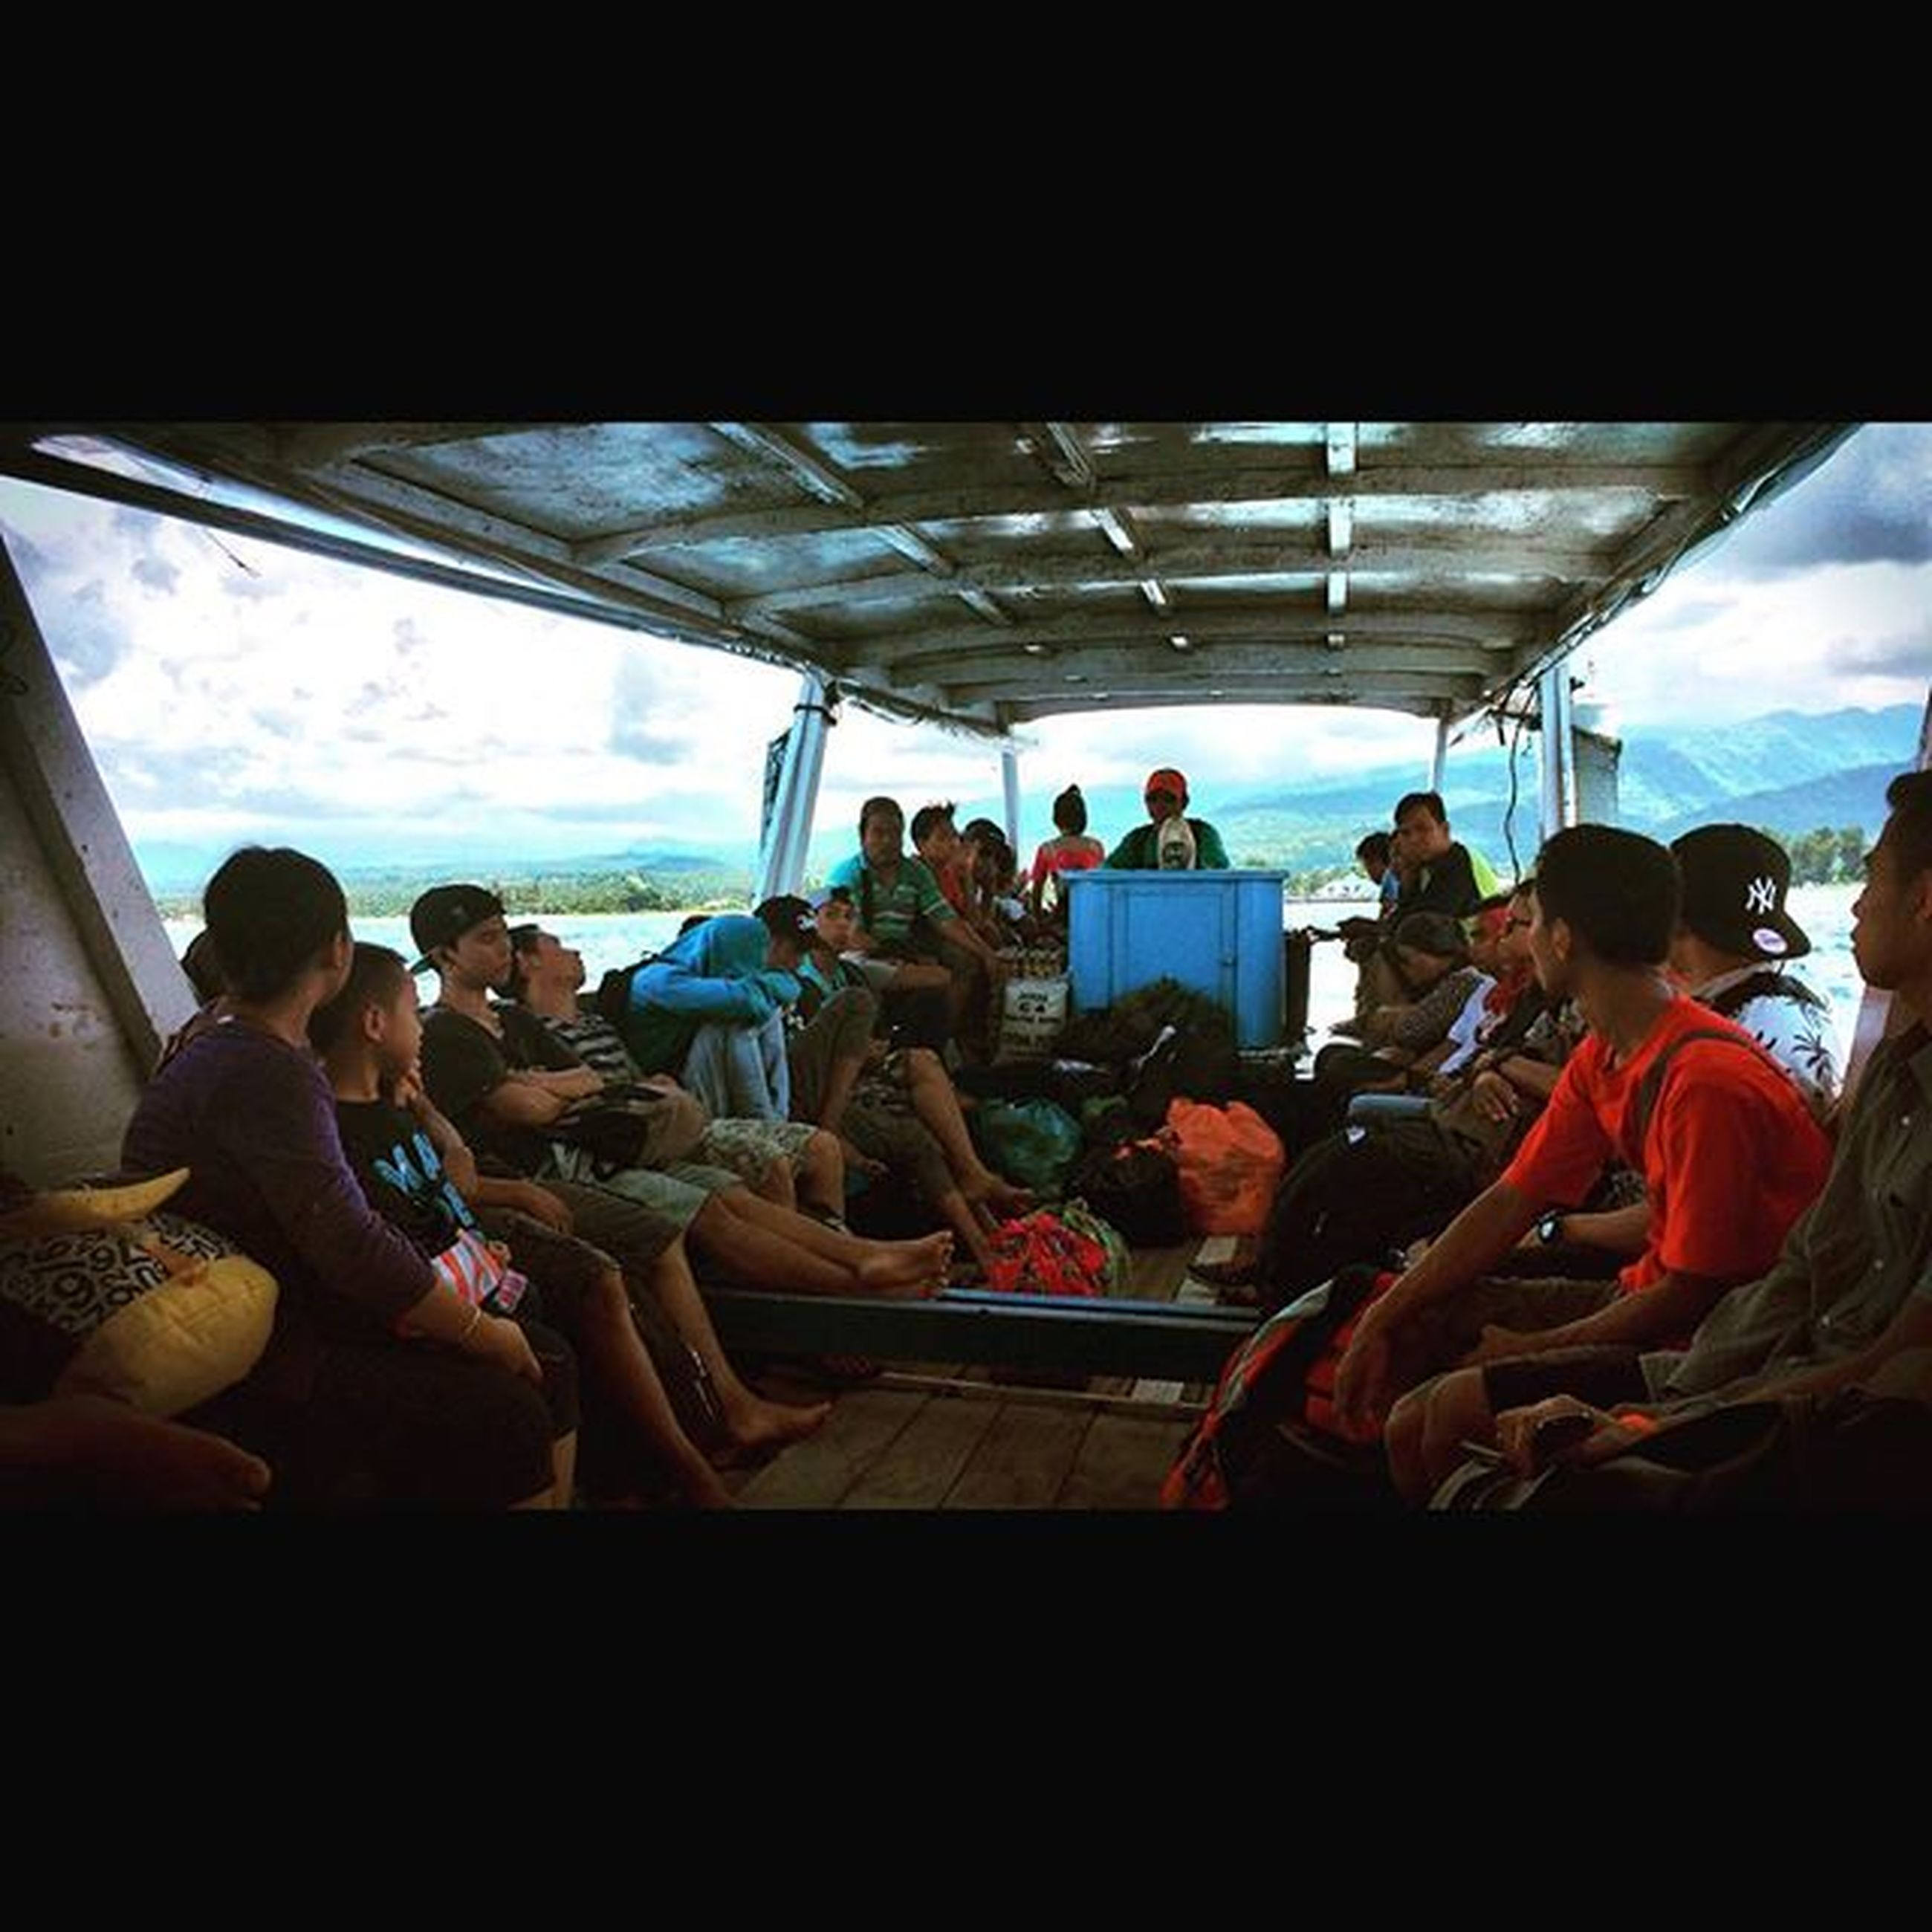 indoors, men, lifestyles, large group of people, person, leisure activity, medium group of people, transportation, travel, glass - material, sitting, standing, togetherness, journey, passenger, mixed age range, walking, window, public transportation